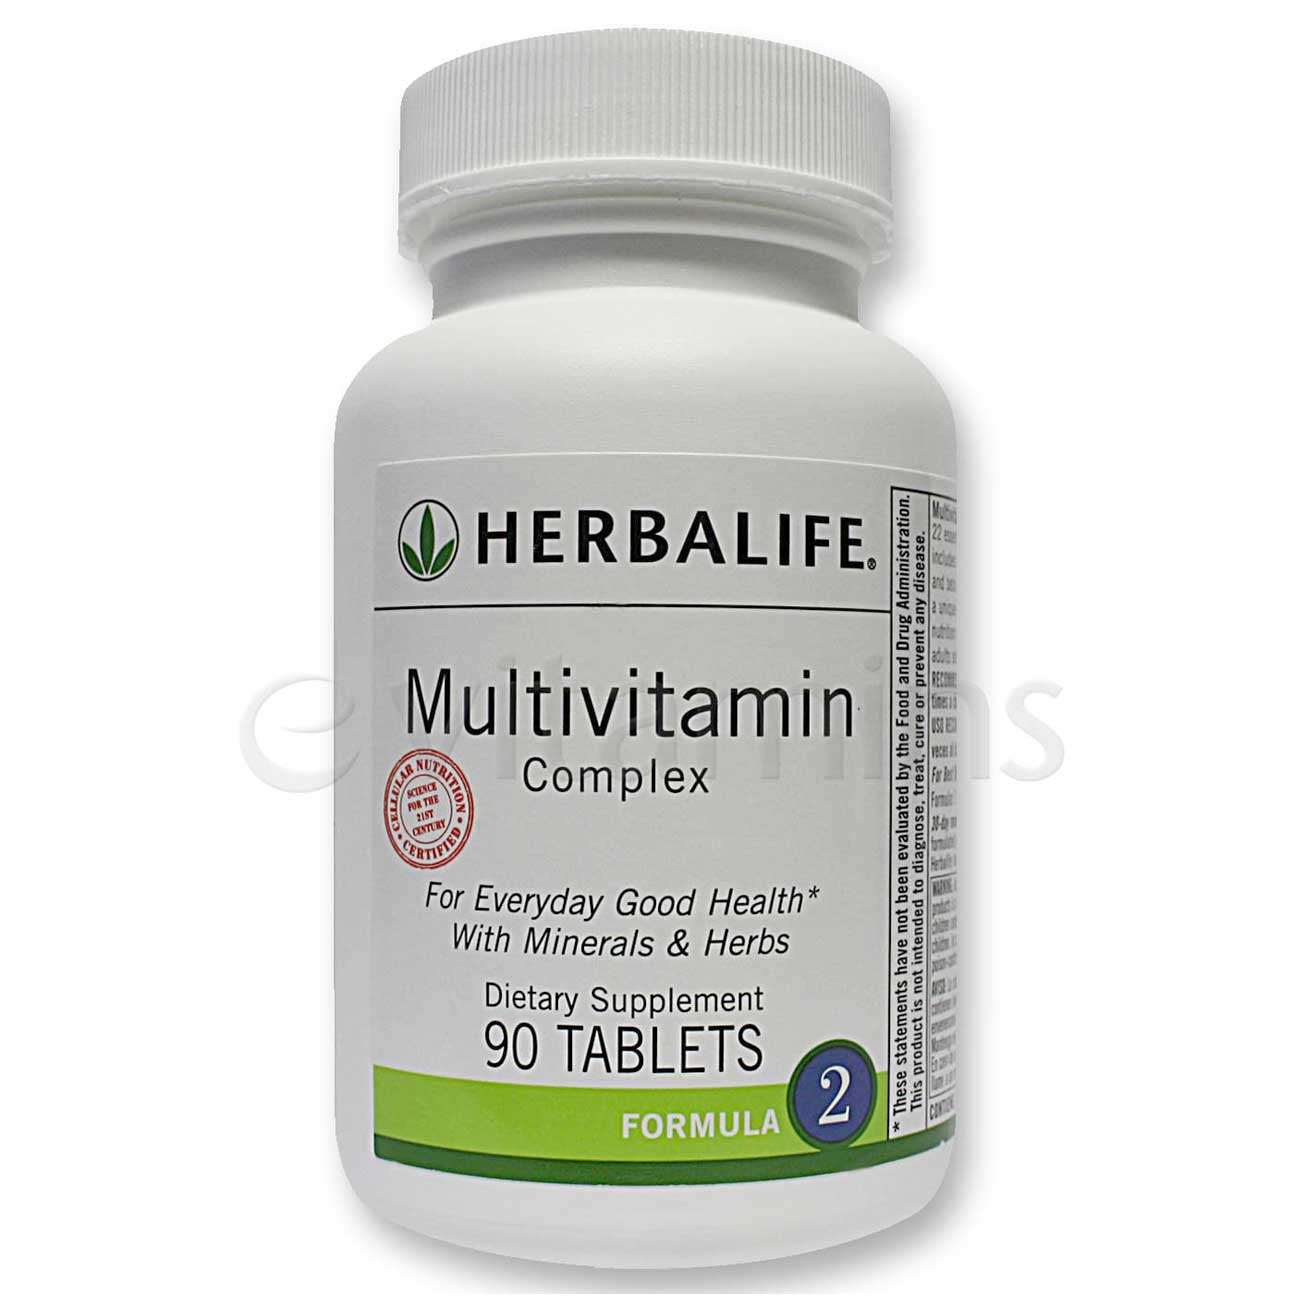 Sundown Naturals Adult Multivitamin Gummies with Vitamin D3 are a perfect choice for those who are young at heart. They provide comprehensive nutritional support for bone, immune and heart health, and contribute to energy metabolism.*.